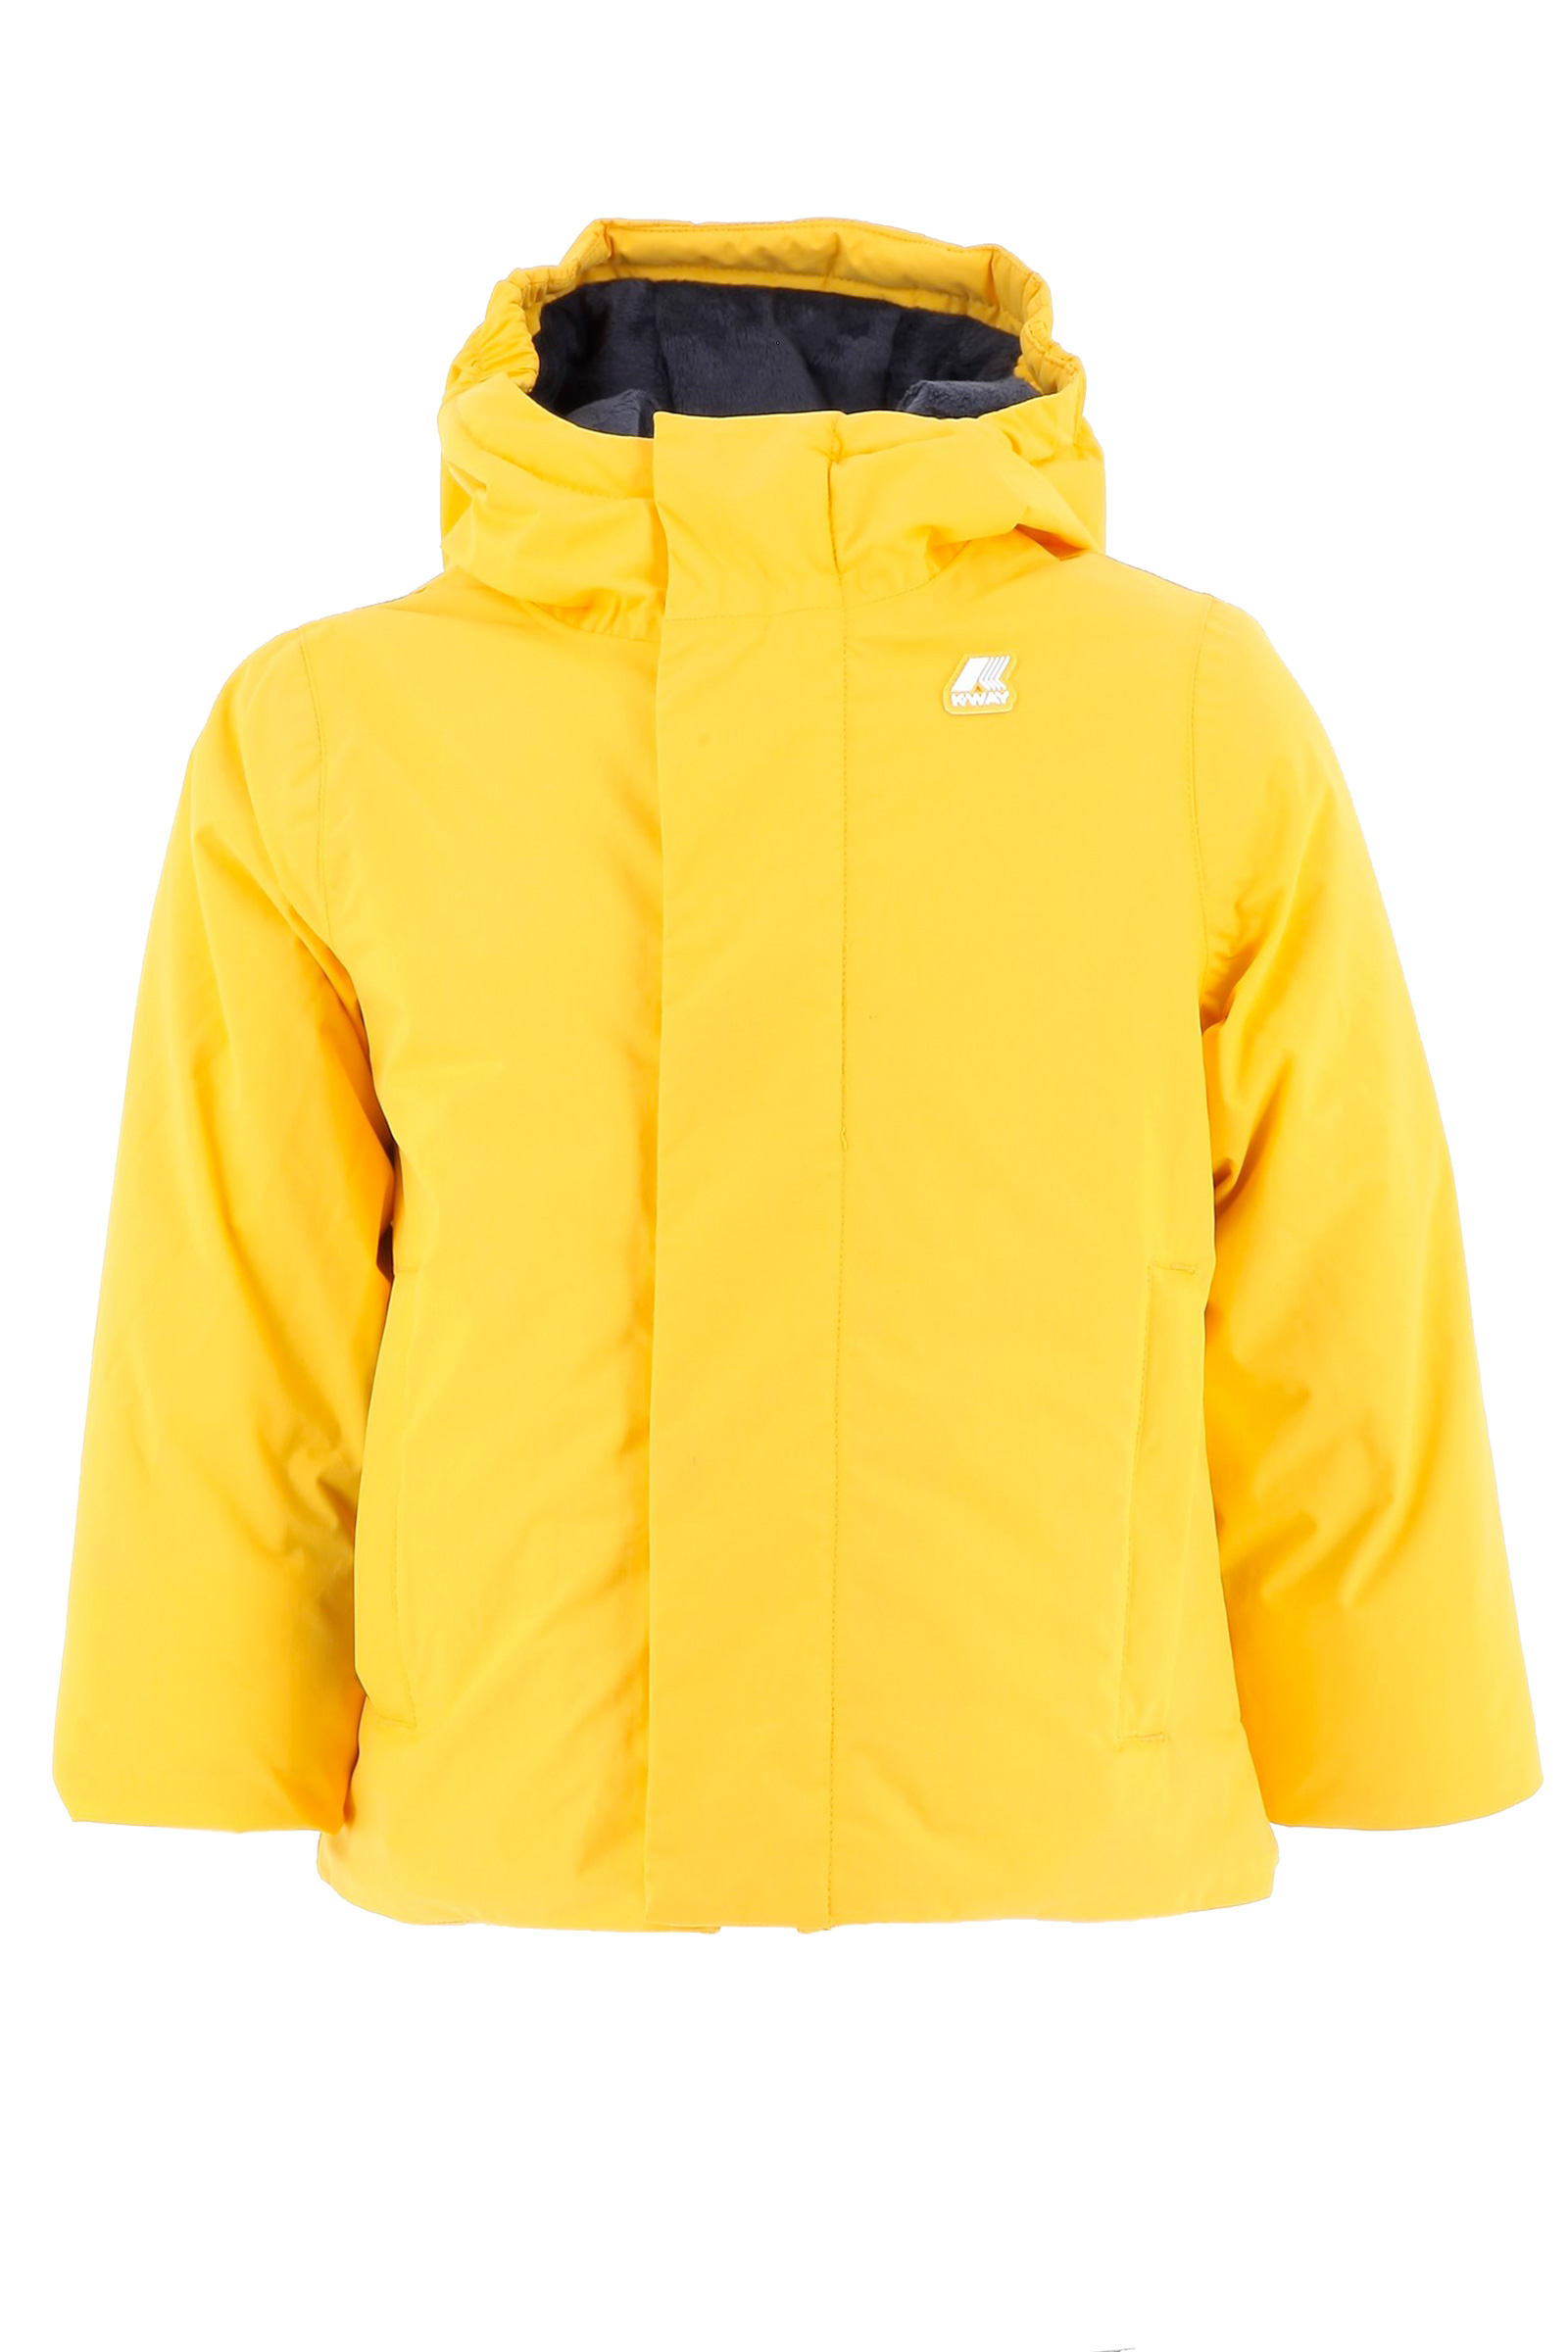 K-way jacket K-way | Jacket | K1119KWA3A